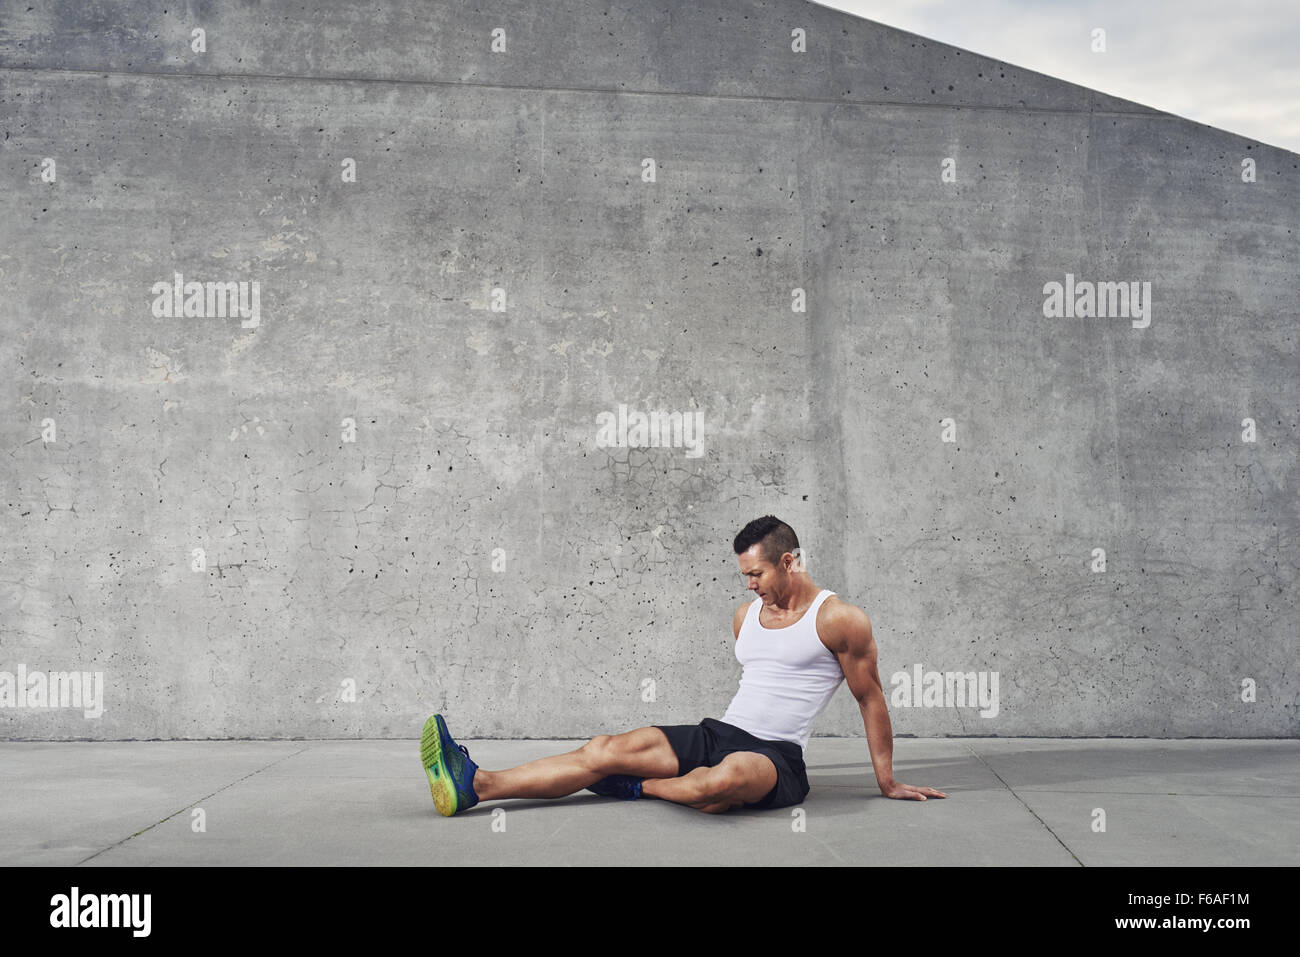 Fitness athlete man relaxing and stretching muscles and legs wearing a white tank top, well build, copy space - Stock Image